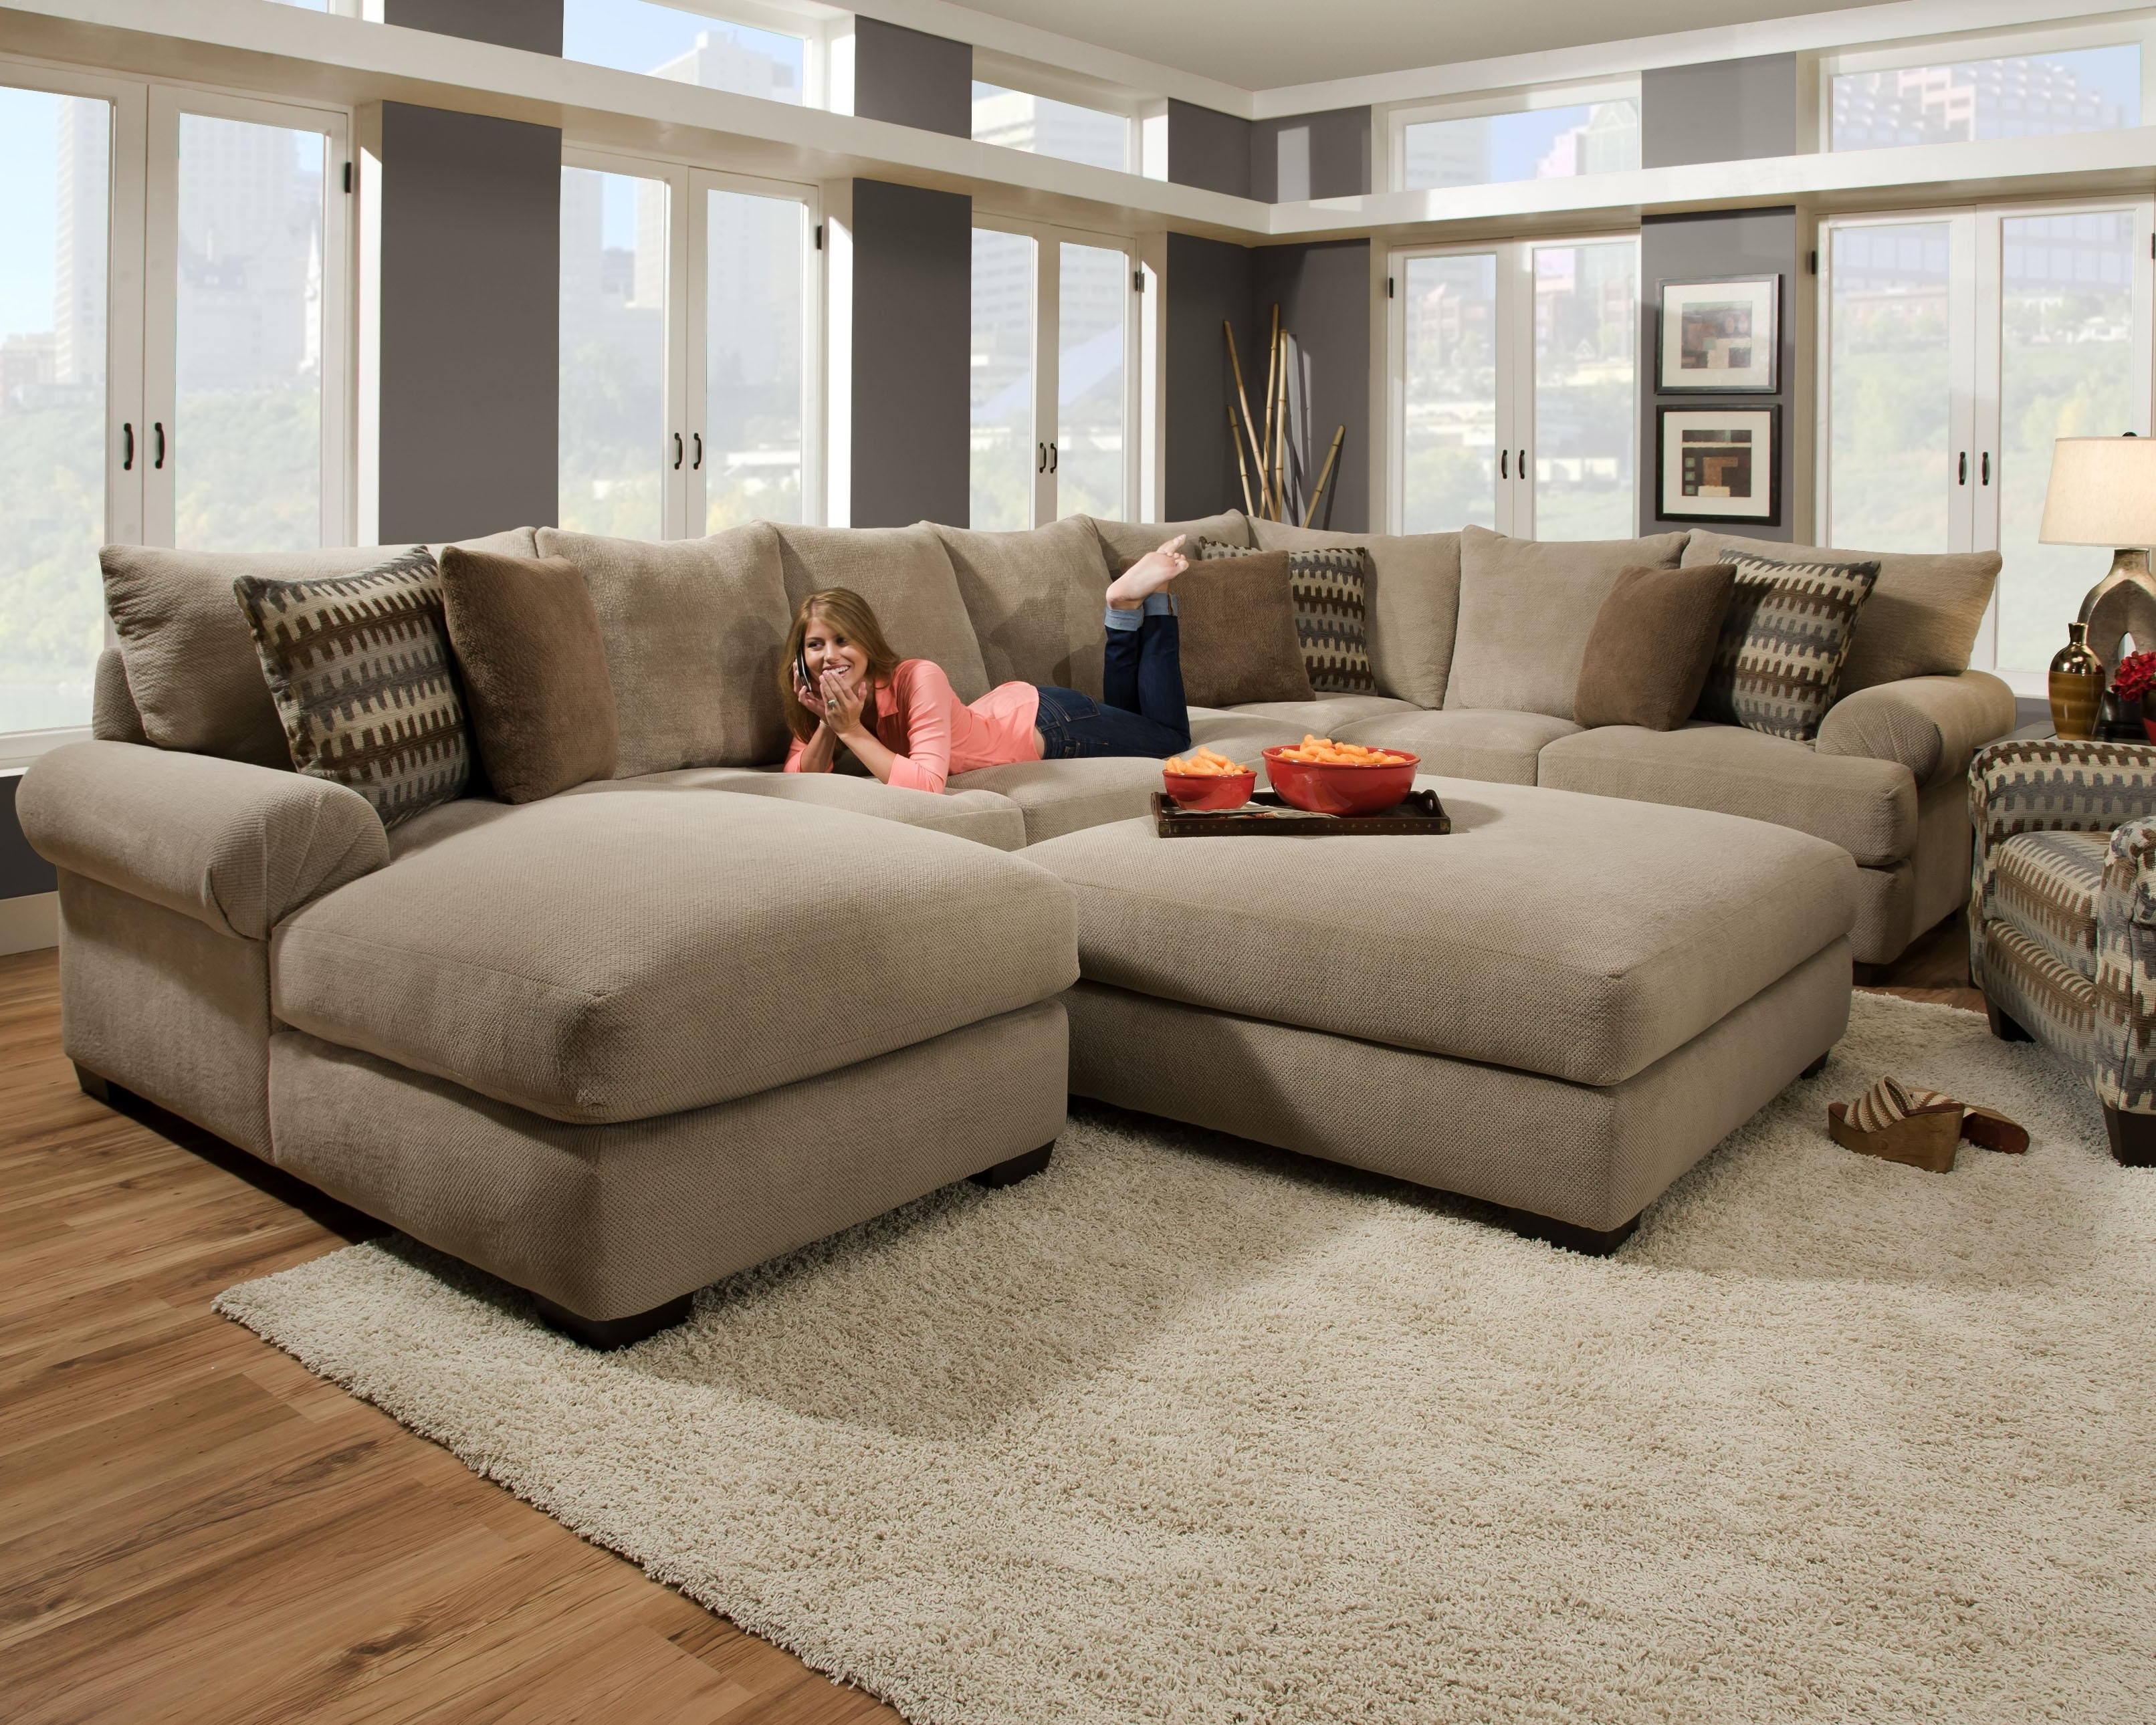 Current Sectional Sofa : Awesome Oversized Sectional Sofas With Chaise Throughout Large Sectionals With Chaise (View 2 of 15)